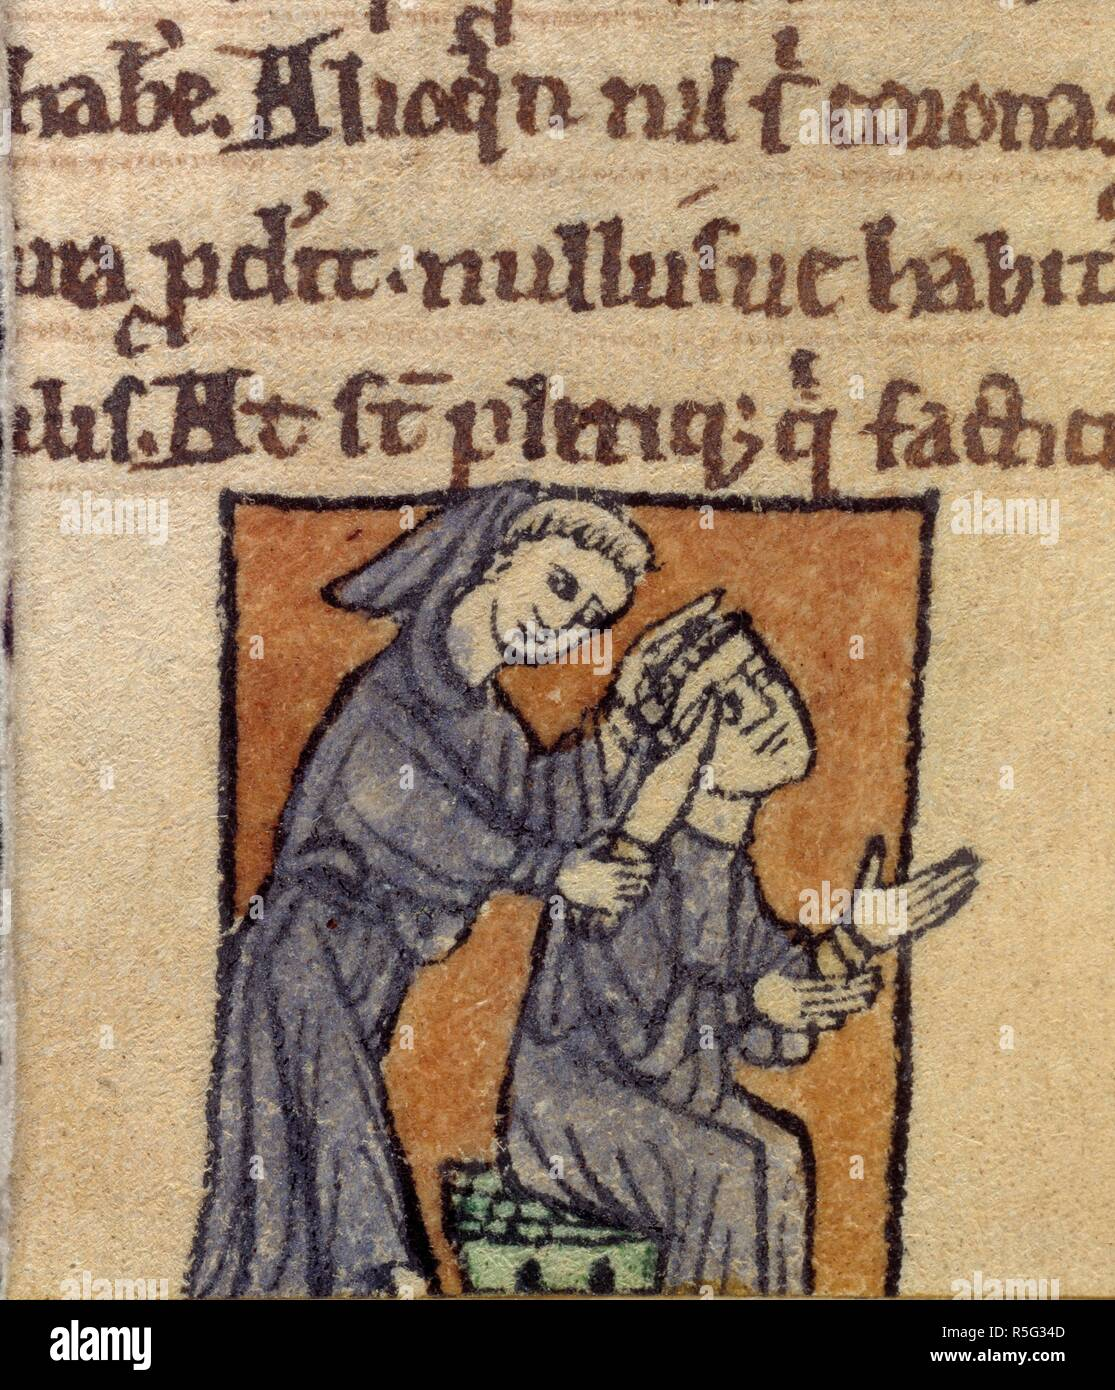 Monk being given tonsure. De similitudinibus. (Detail) A monk being given a tonsure by another monk with a knife.  Image taken from De similitudinibus. . Source: Cotton Cleopatra C. XI, f.27v. Language: Latin. Stock Photo